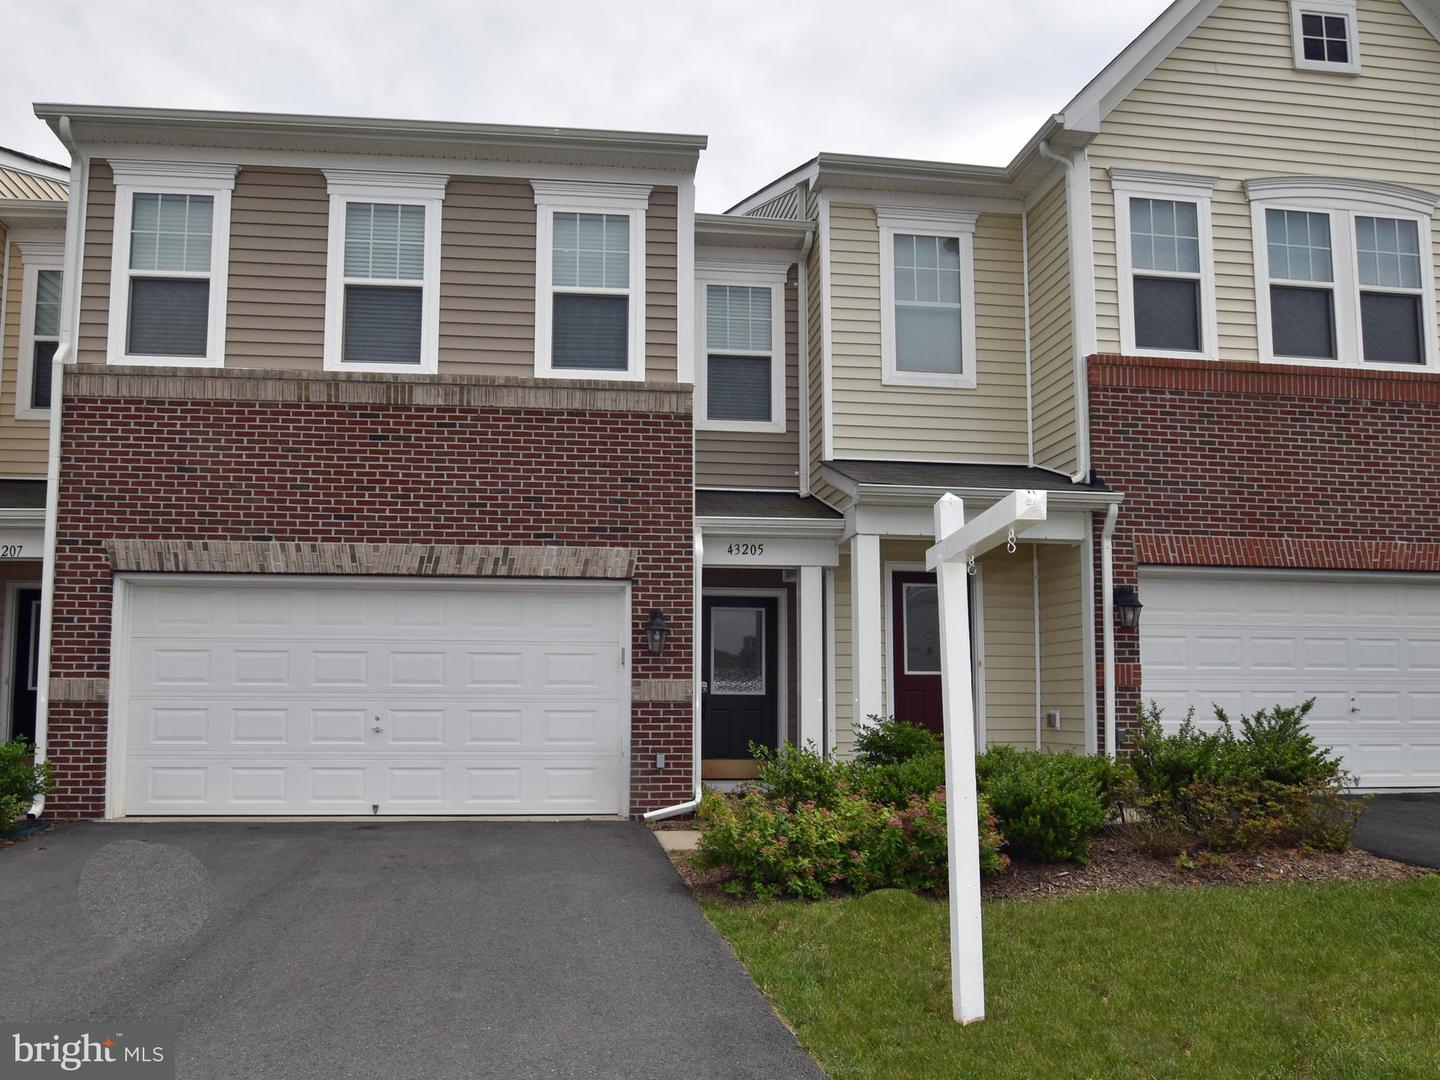 Other Residential for Rent at 43205 Stillwater Ter Broadlands, Virginia 20148 United States